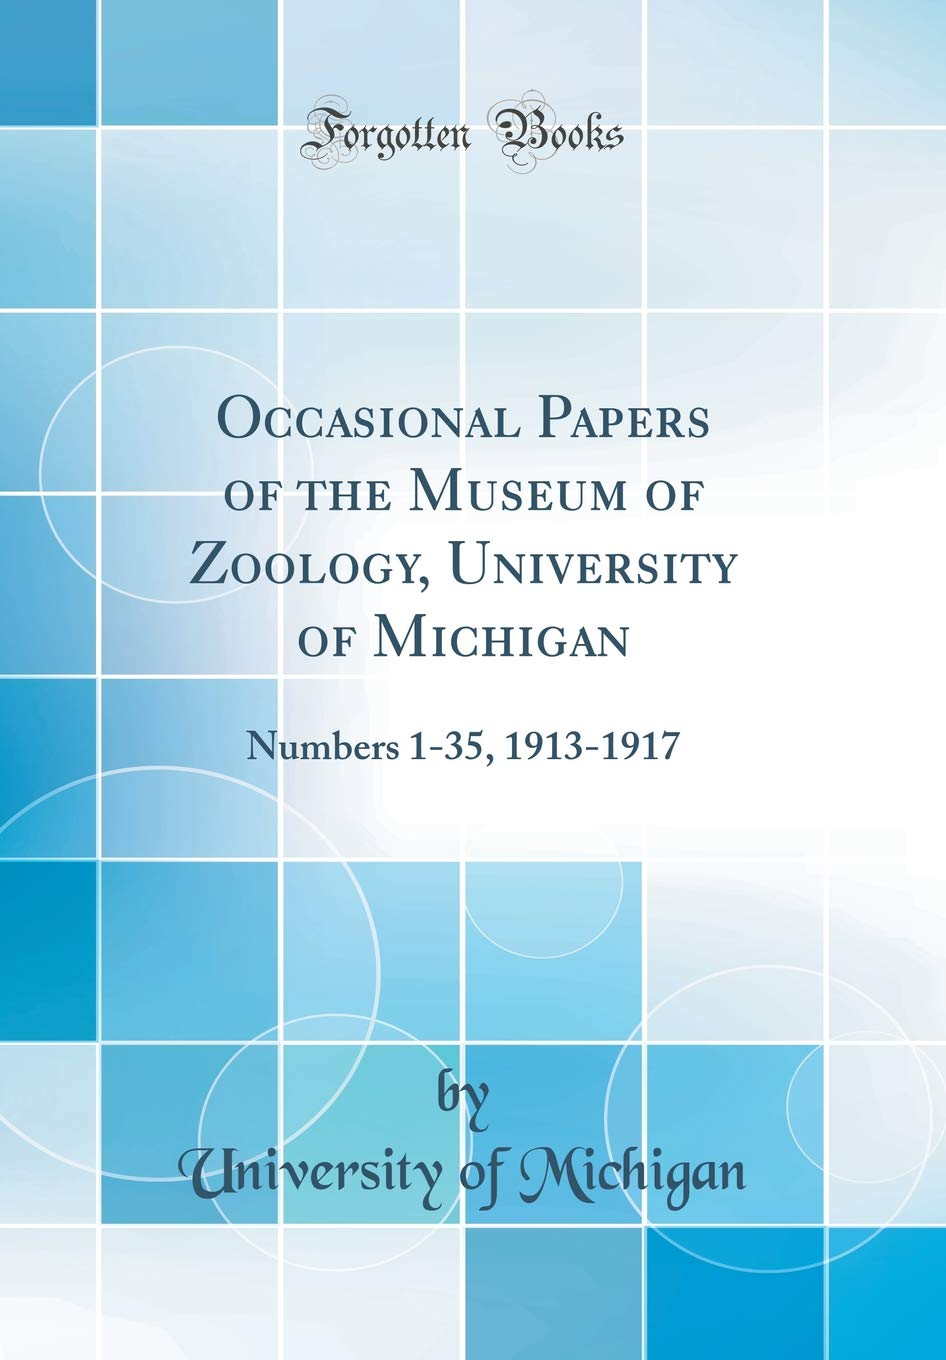 Occasional Papers of the Museum of Zoology, University of Michigan: Numbers 1-35, 1913-1917 (Classic Reprint) pdf